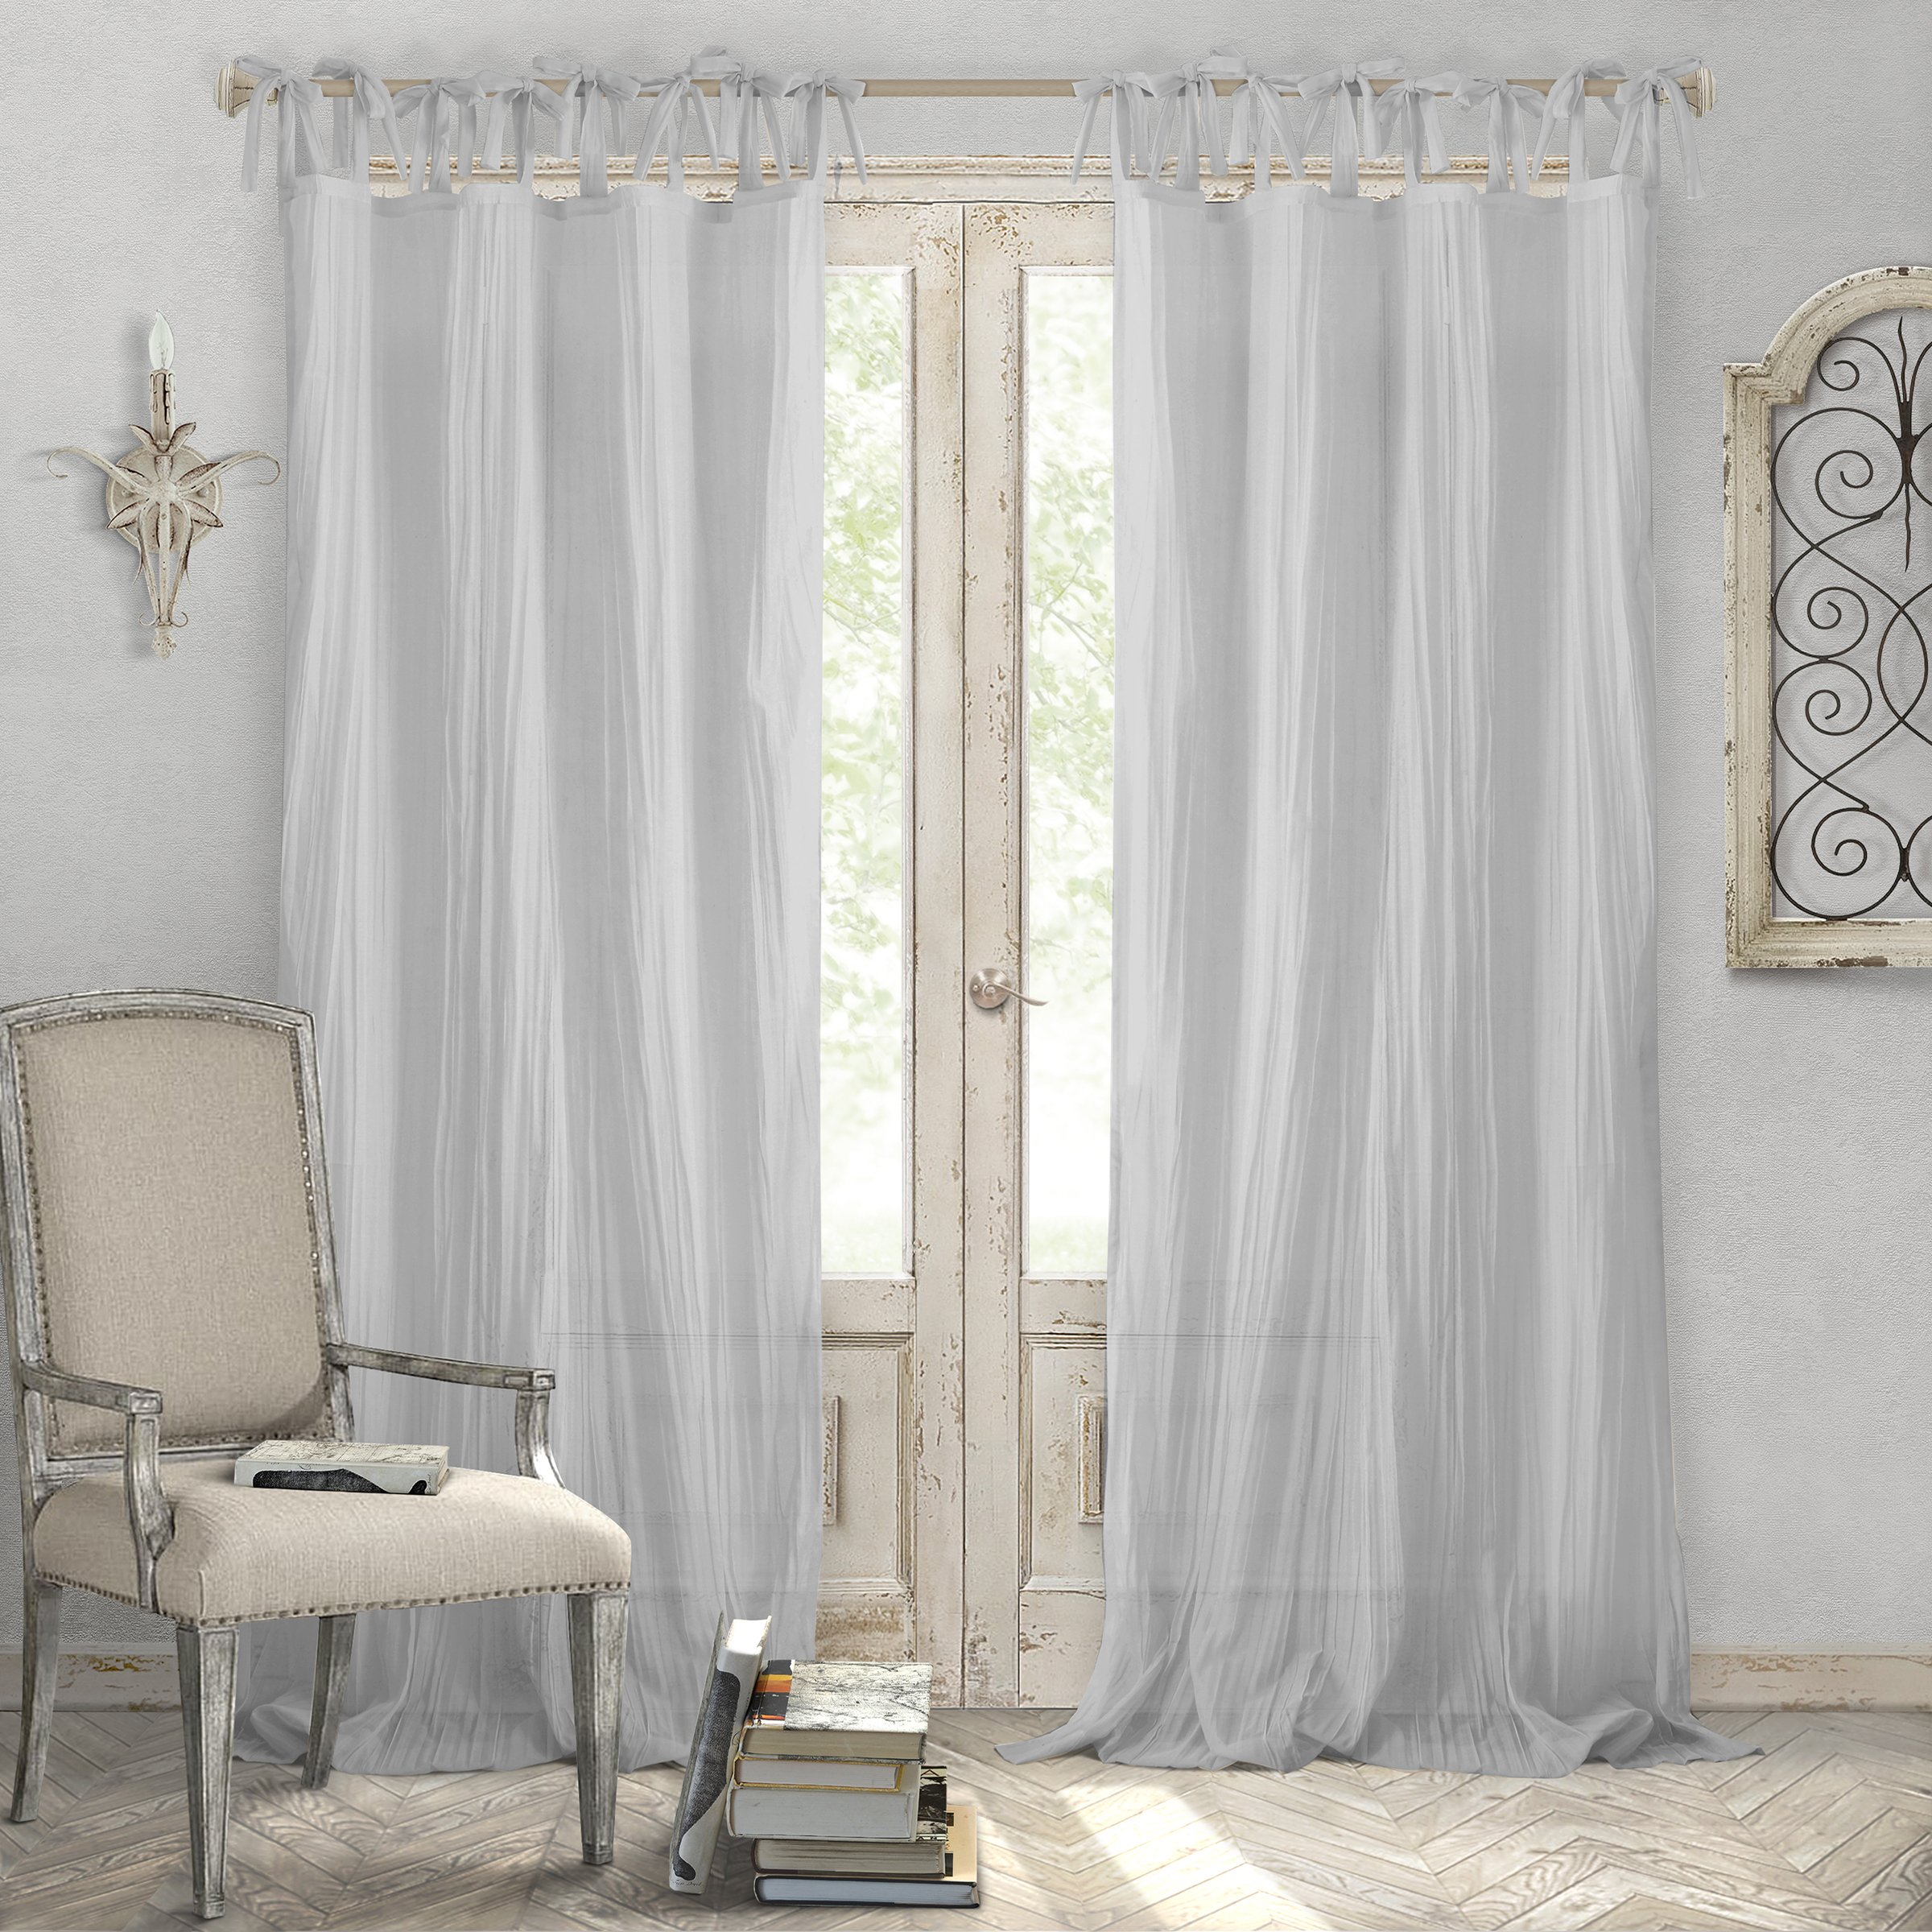 Elrene Home Fashions Crushed Semi-Sheer Adjustable Tie Top Single Panel Window Curtain Drape, 52'' x 95'' (1, Gray